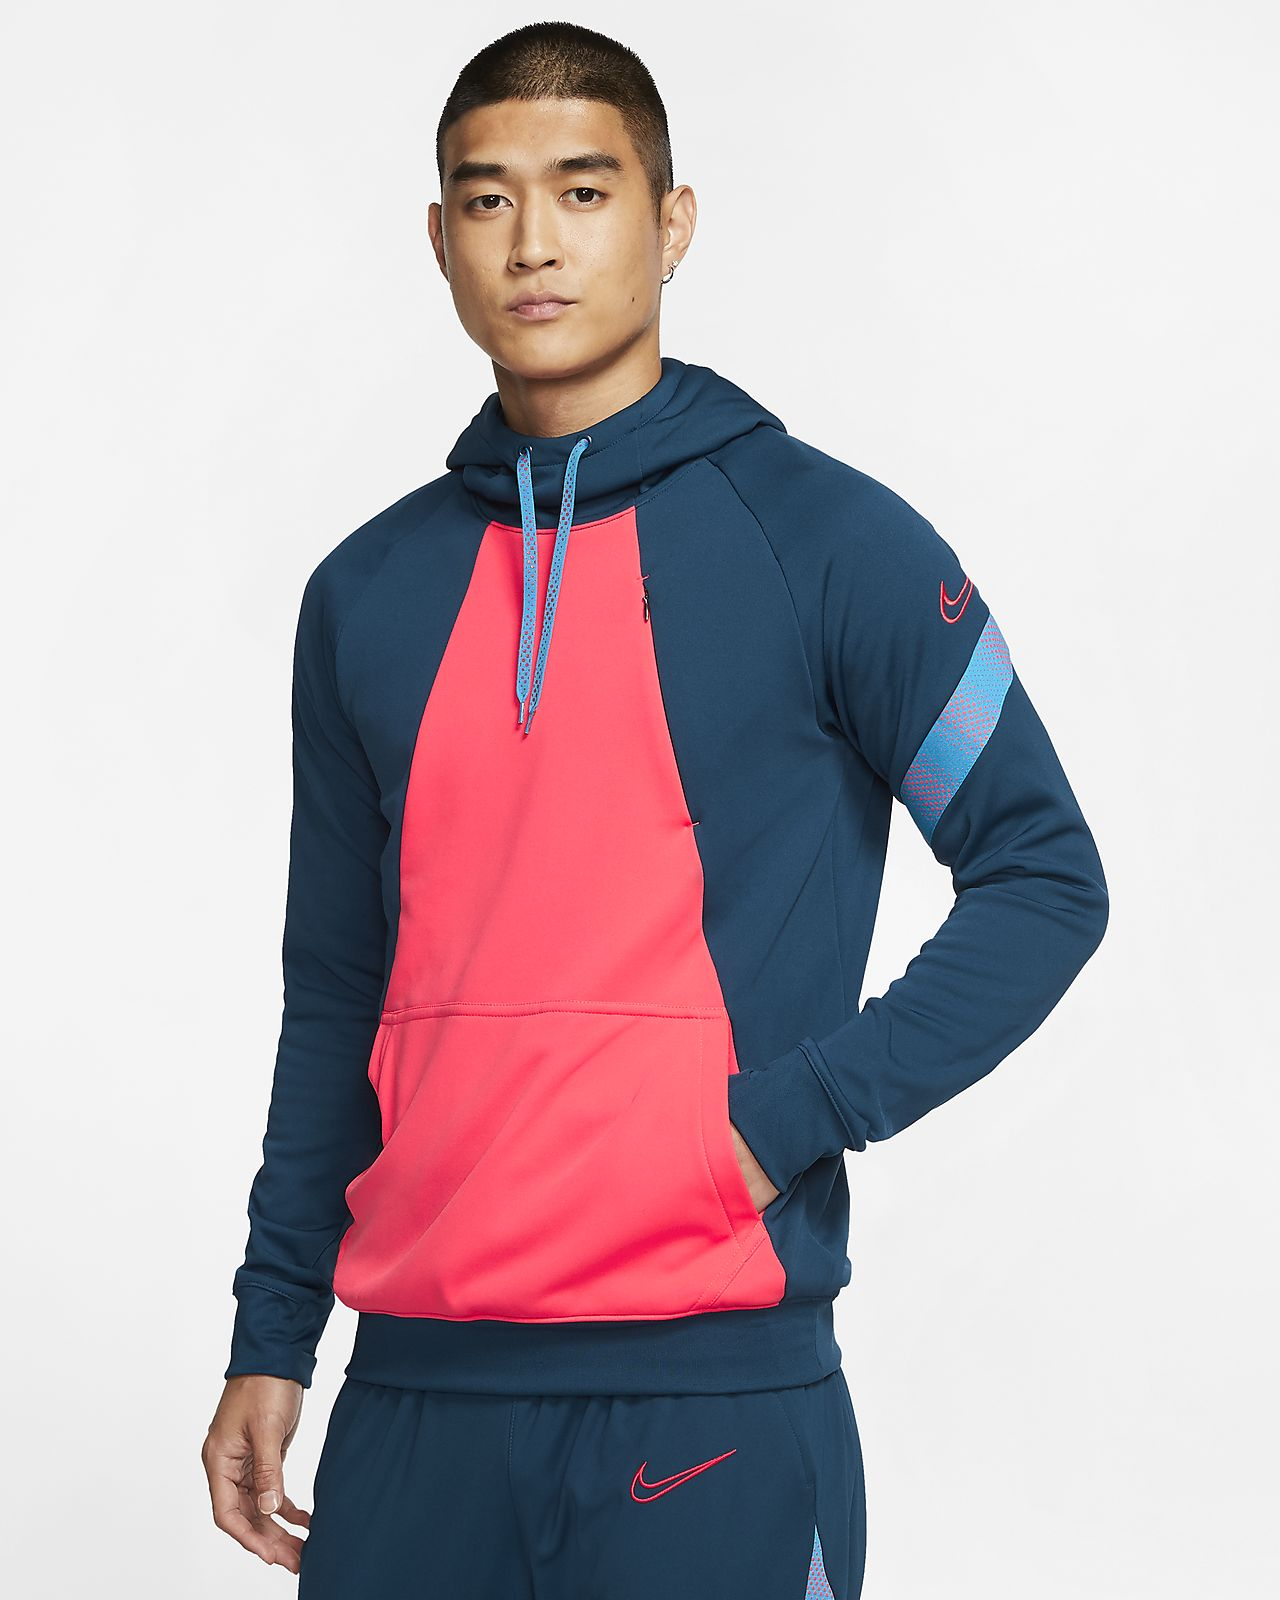 Nike Elite Dri Fit Jacket